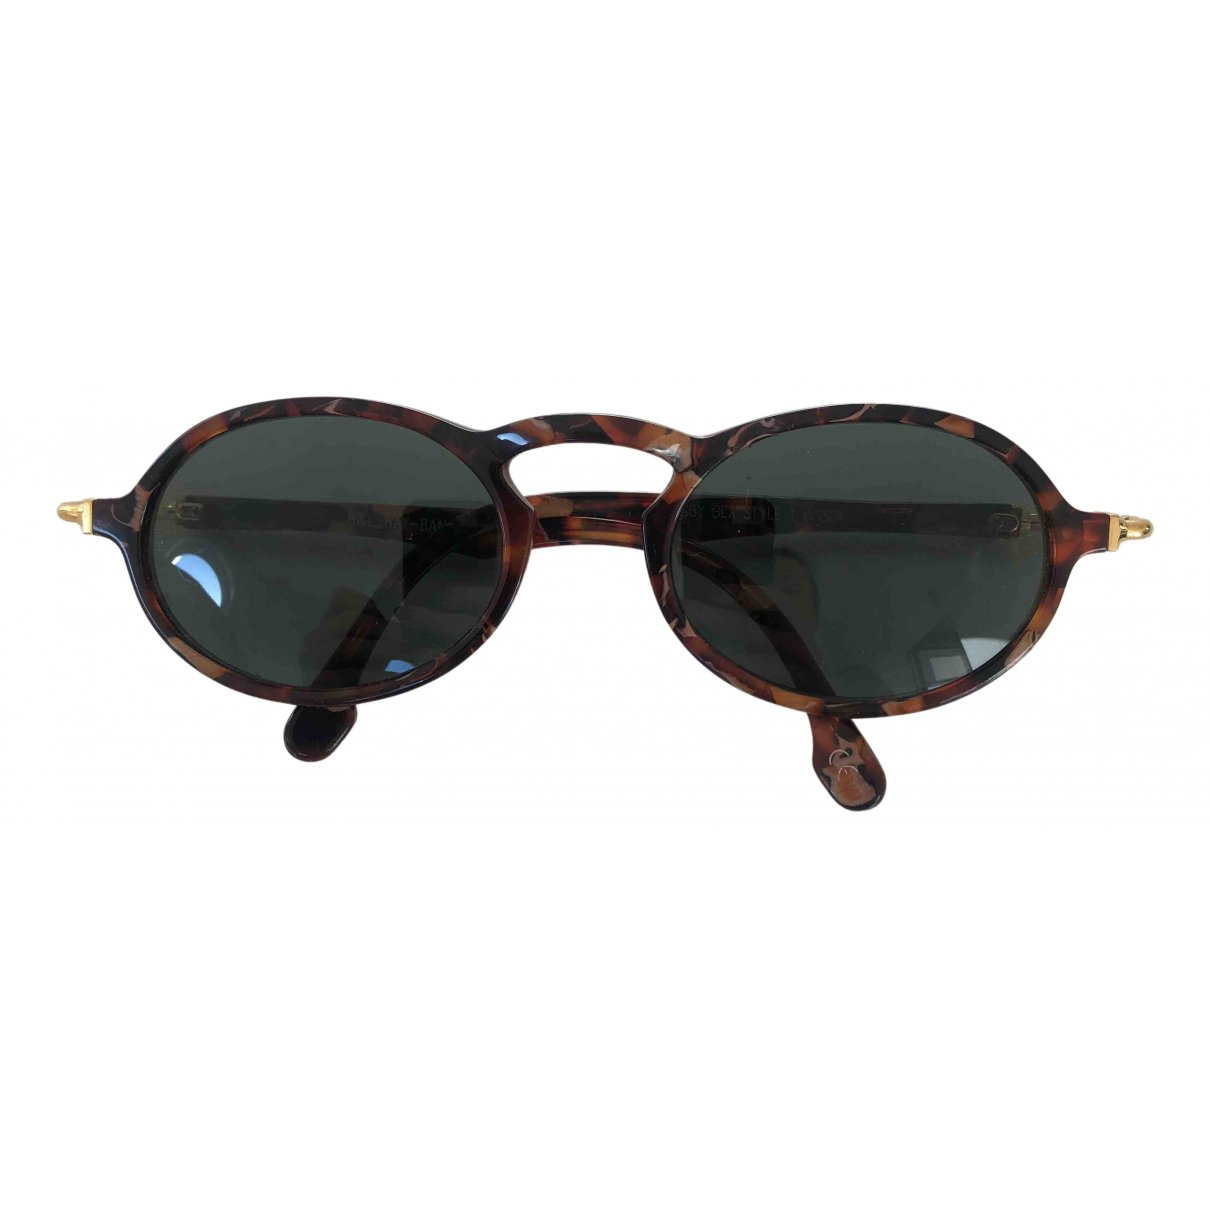 Ray-ban N Brown Sunglasses for Women